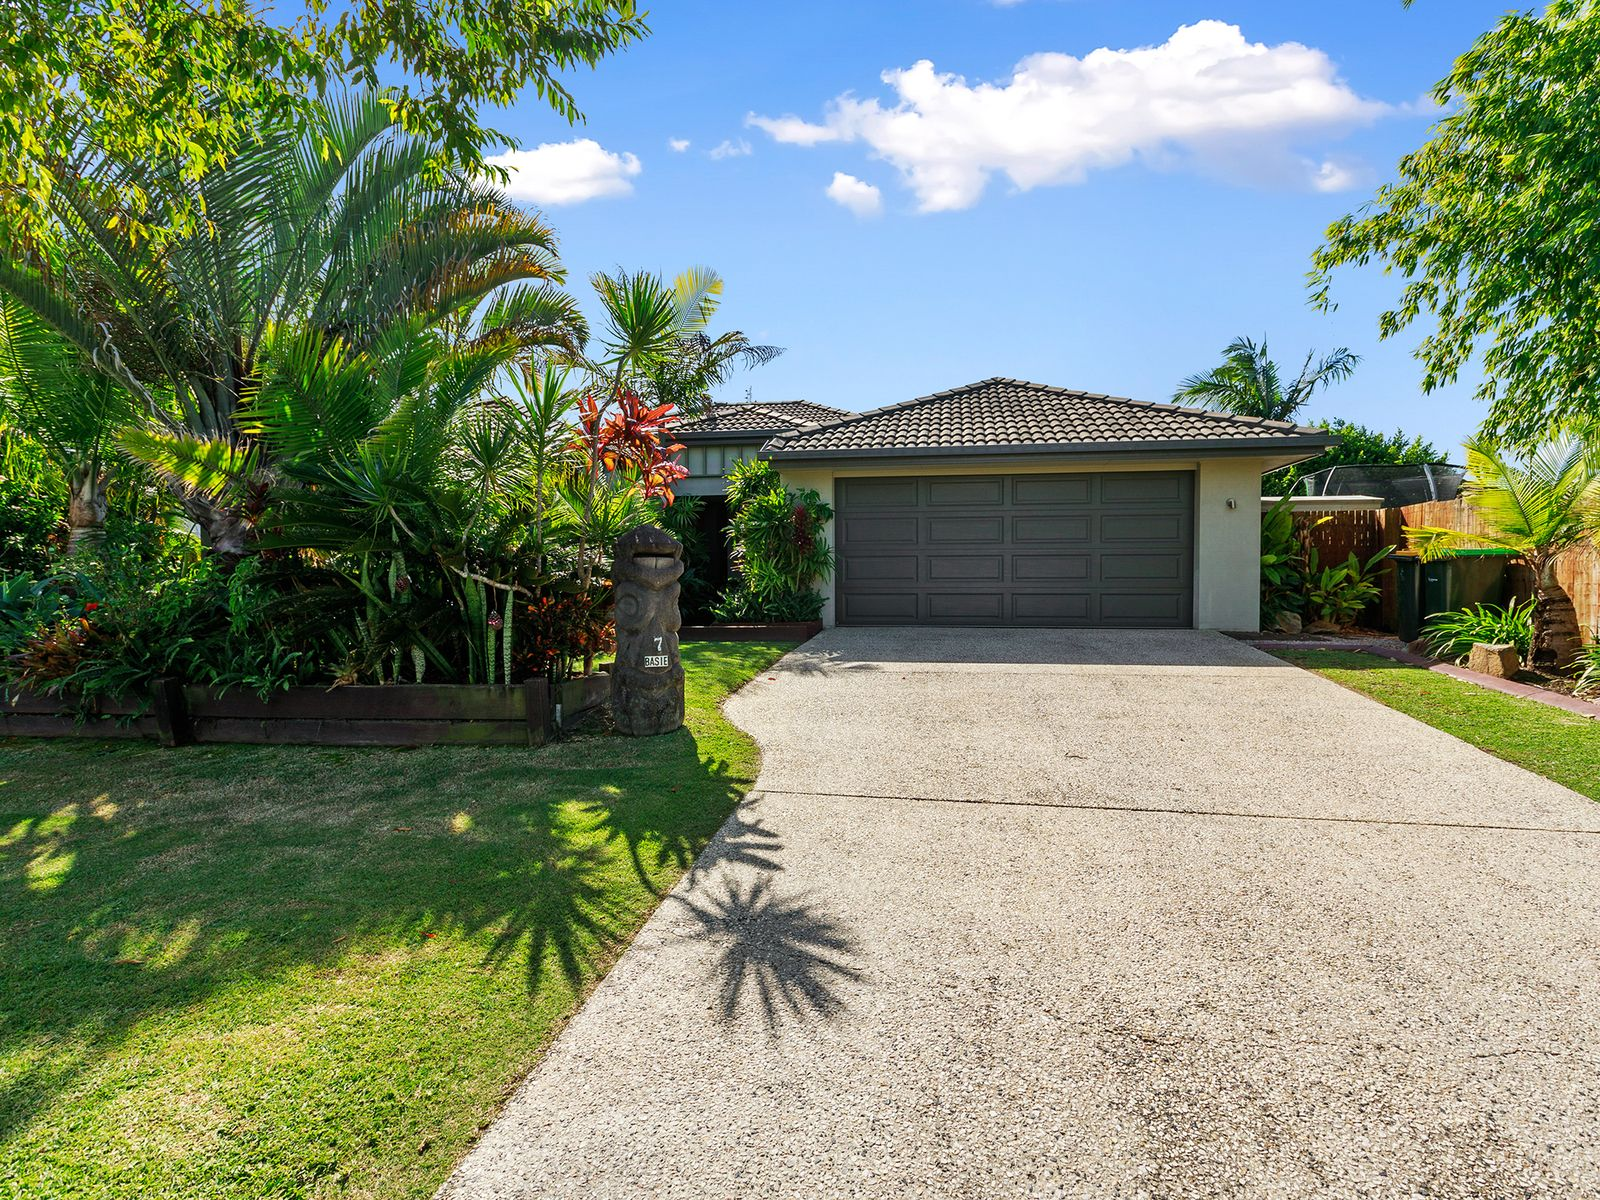 7 Basie Street, Sippy Downs, QLD 4556